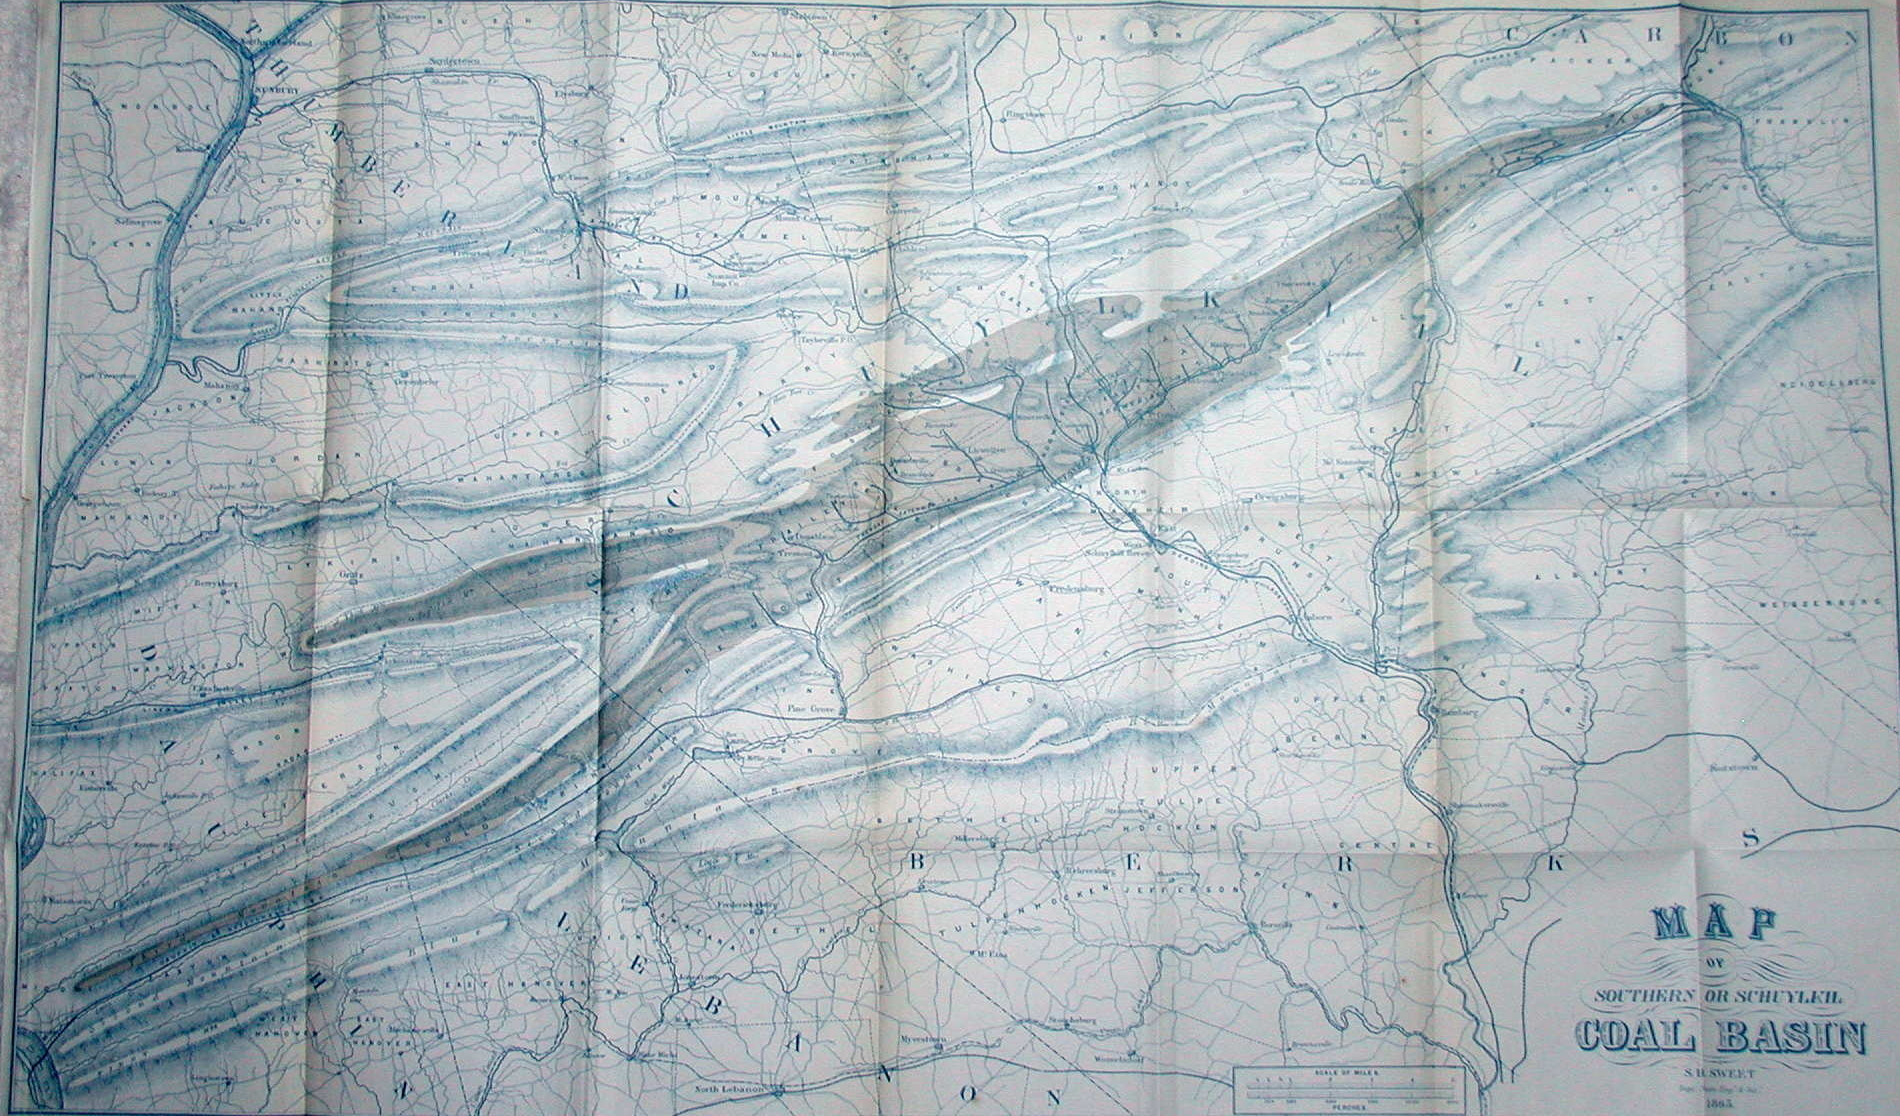 1865 Map Of Southern Or Schuylkil Coal Basin S H Sweet Dept Engr Surr 1865 This Is A Map Of Schuylkill County With Parts Of Northumberland